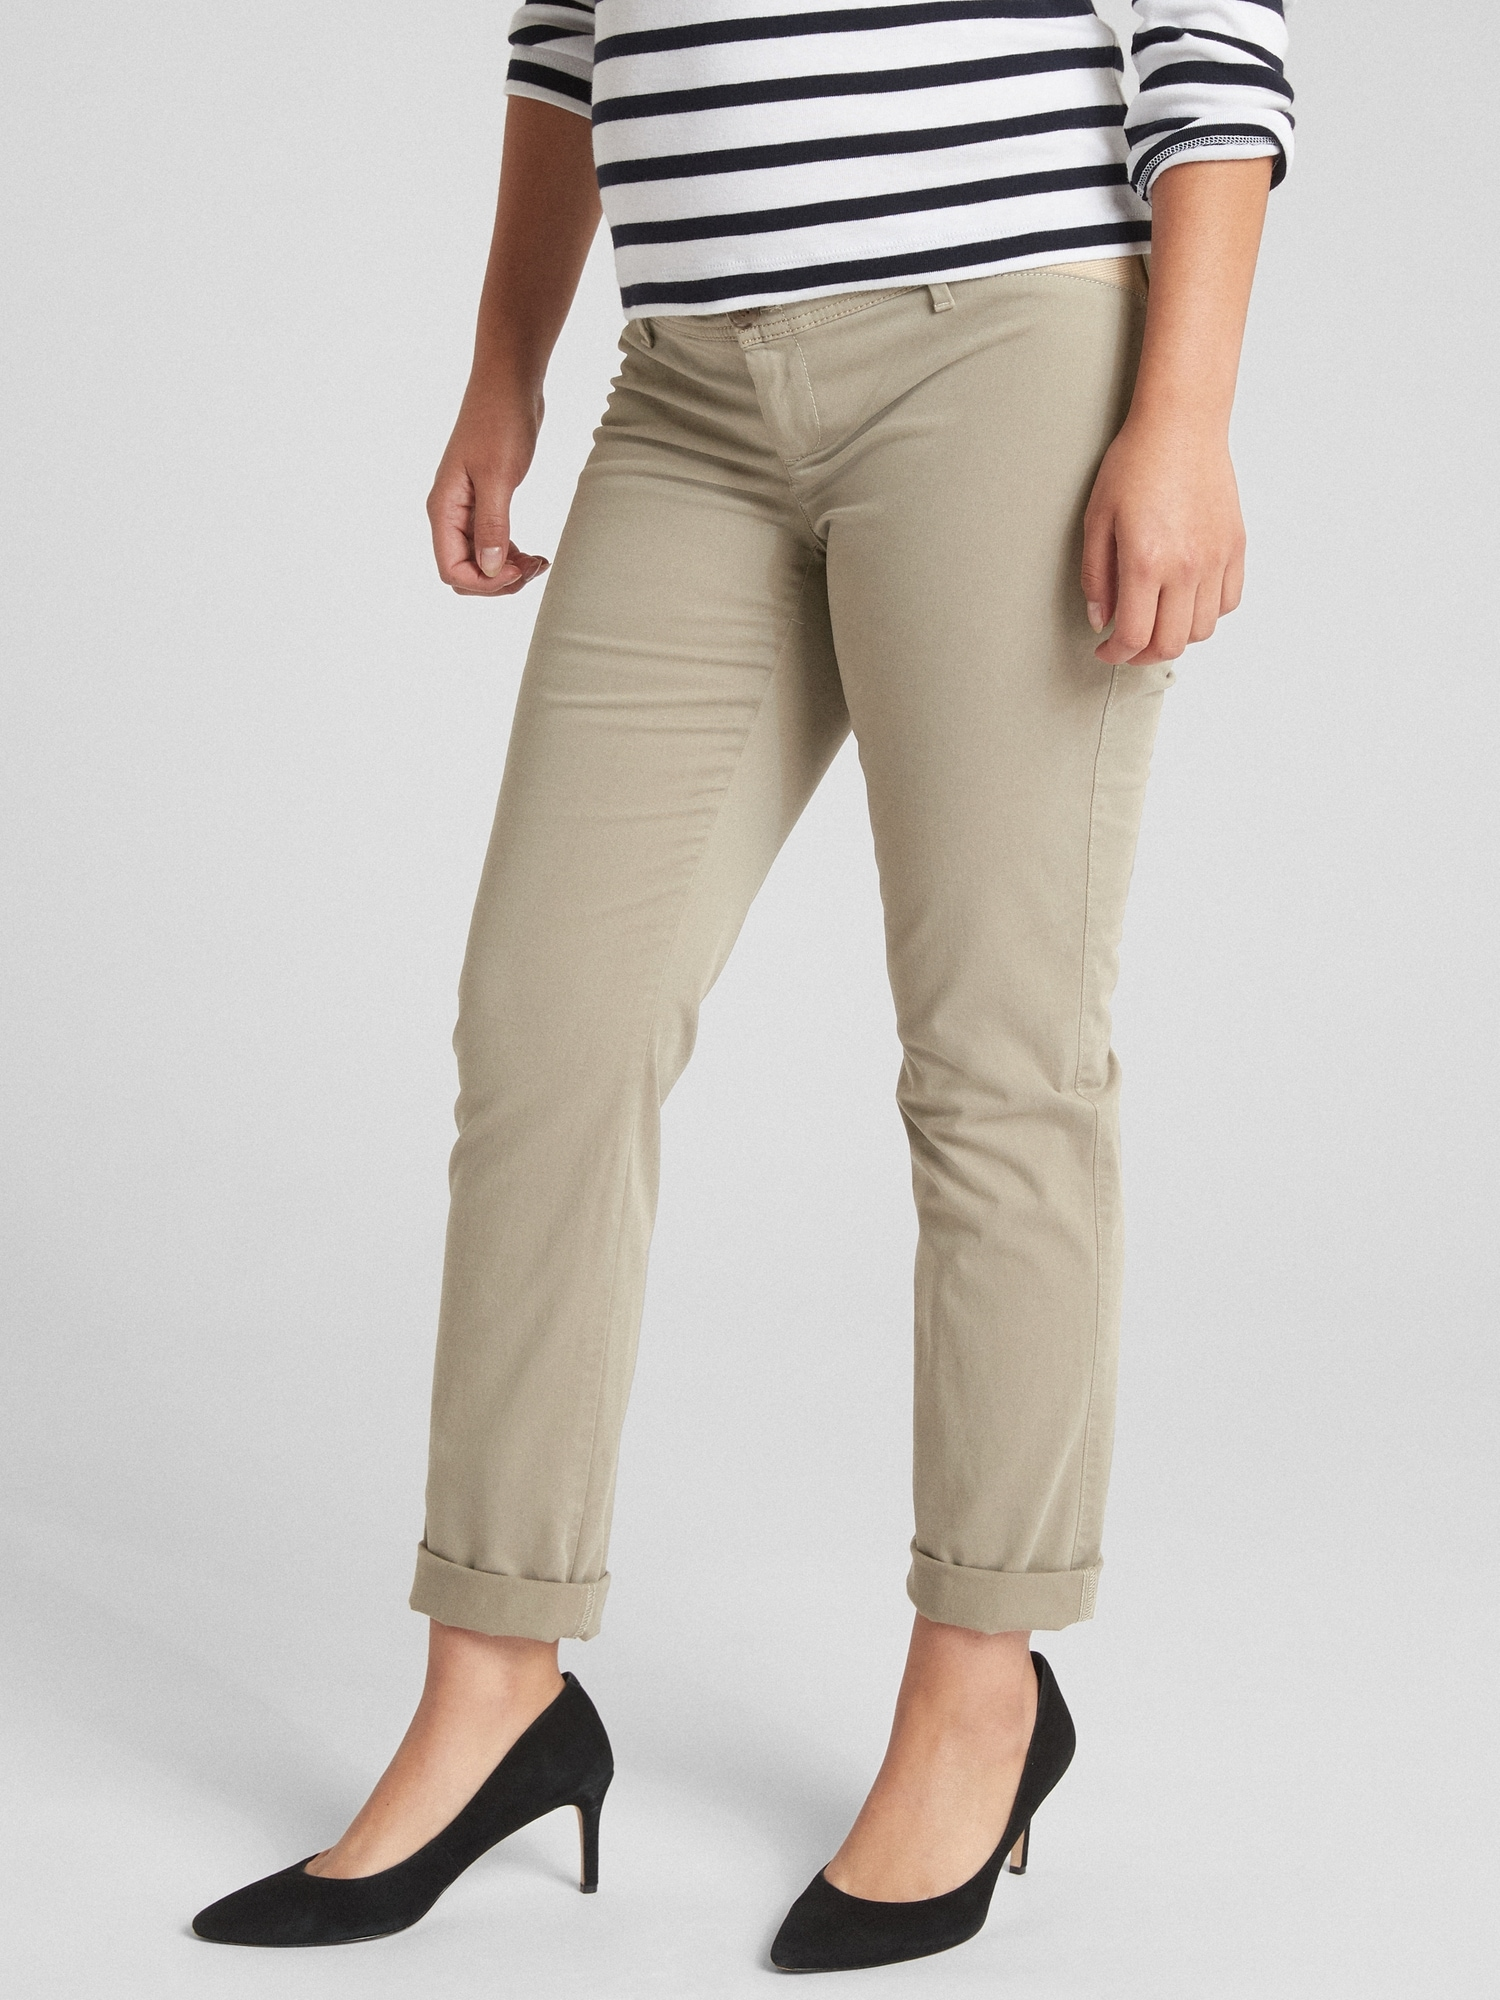 Gap Maternity Inset Panel Girlfriend Chino Pants